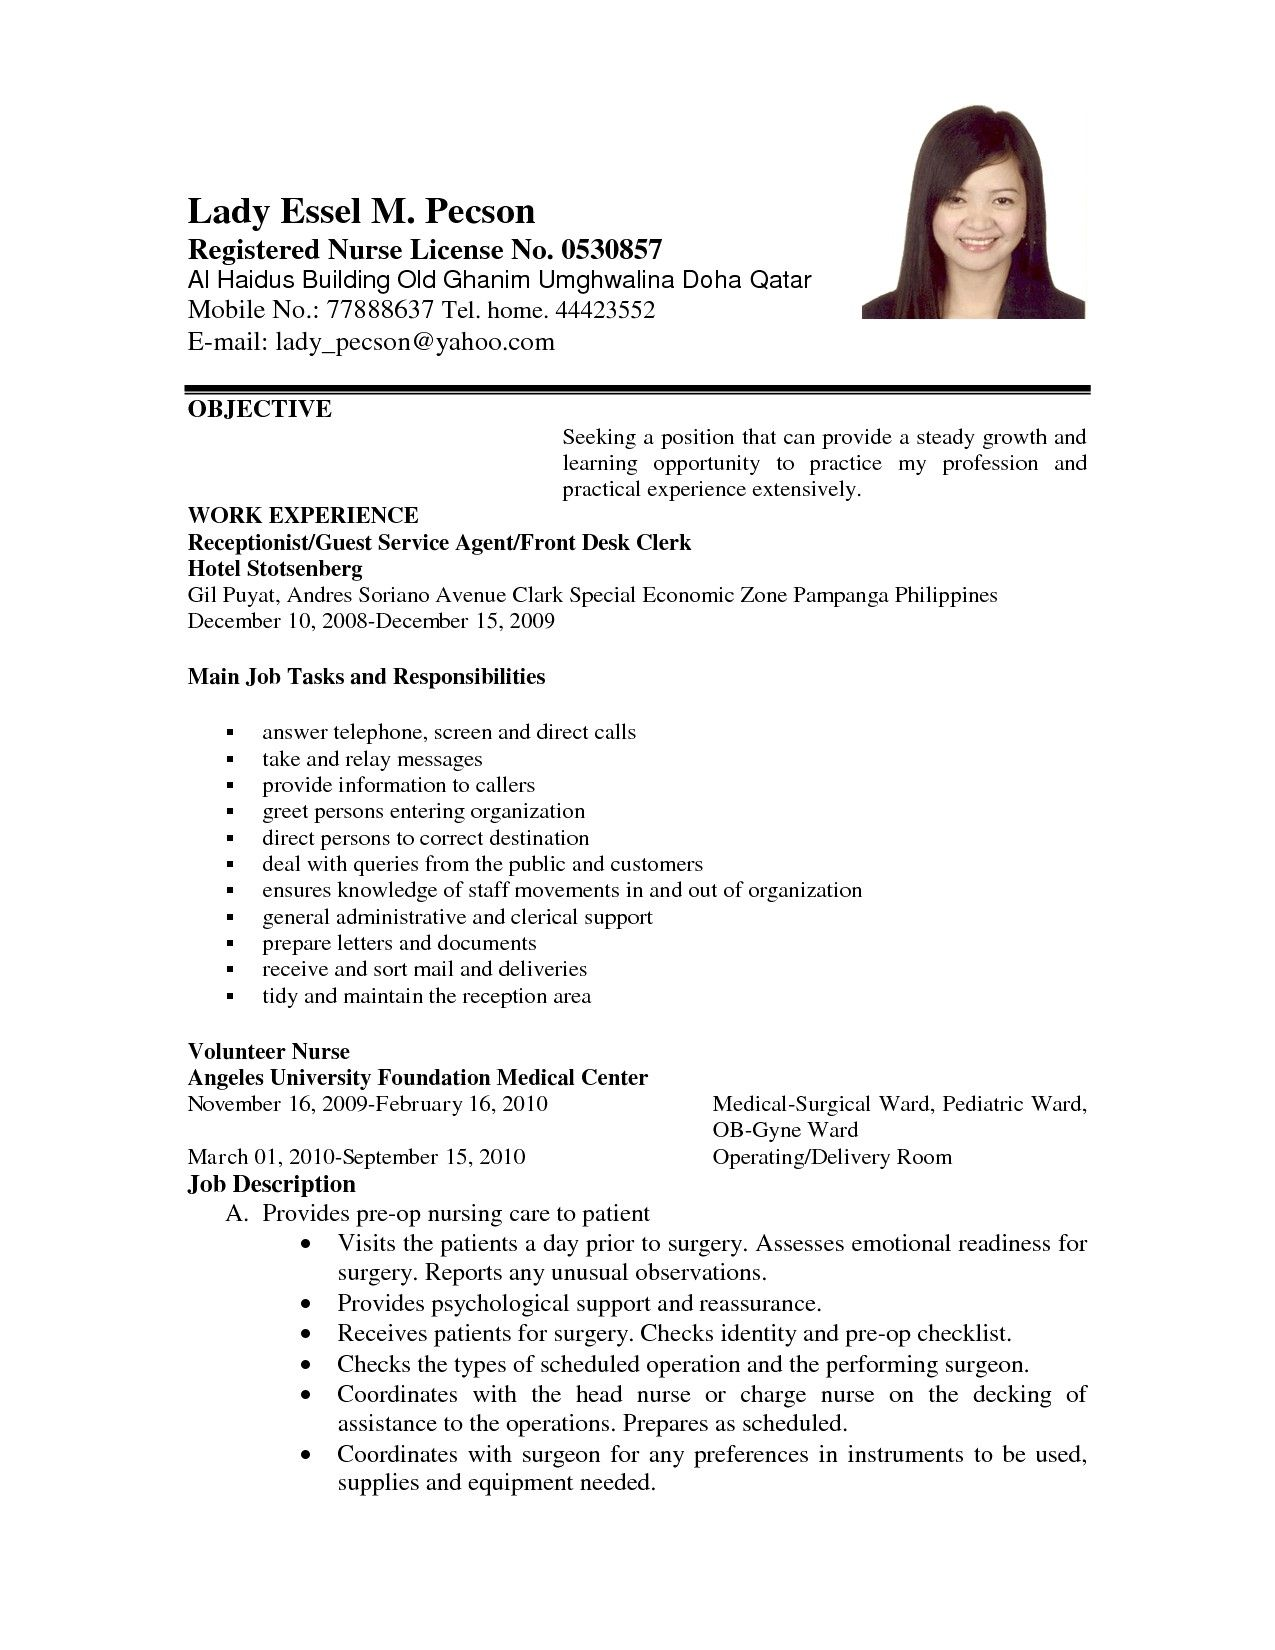 career objective resume examples awesome example applying for job of object cover letter Resume Image Of Resume For Job Application